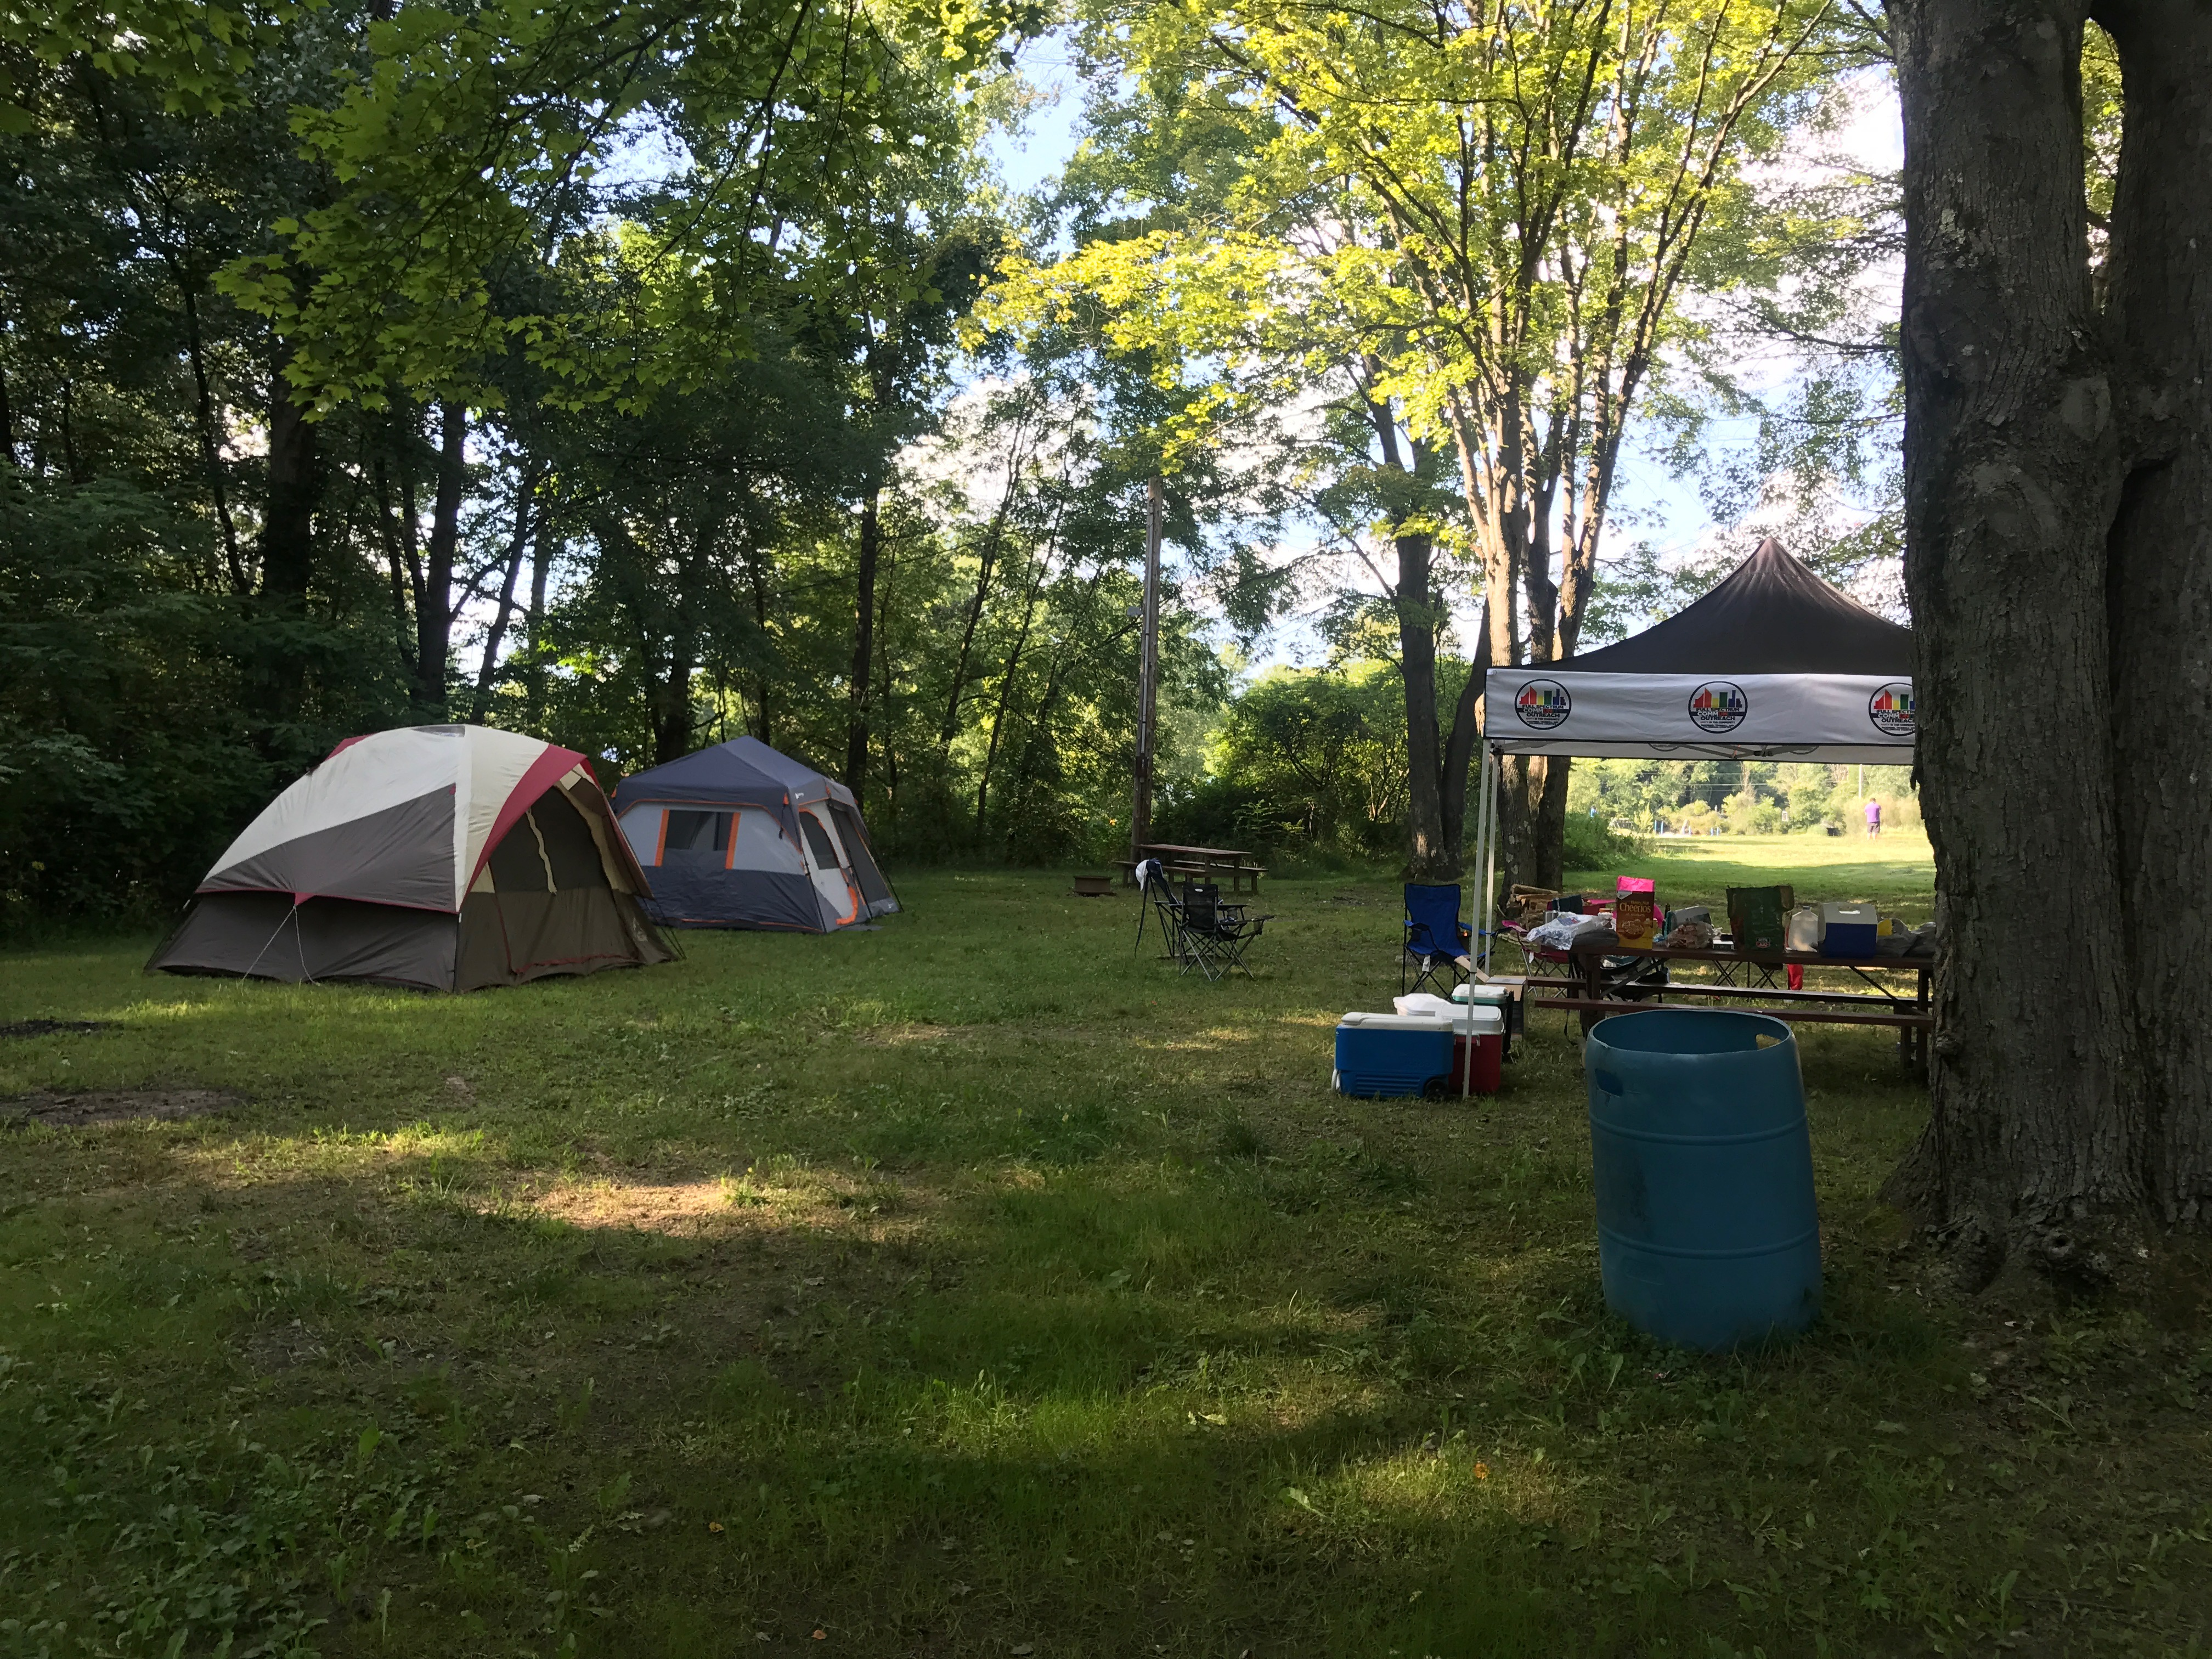 2017 Full Spectrum Camp Out